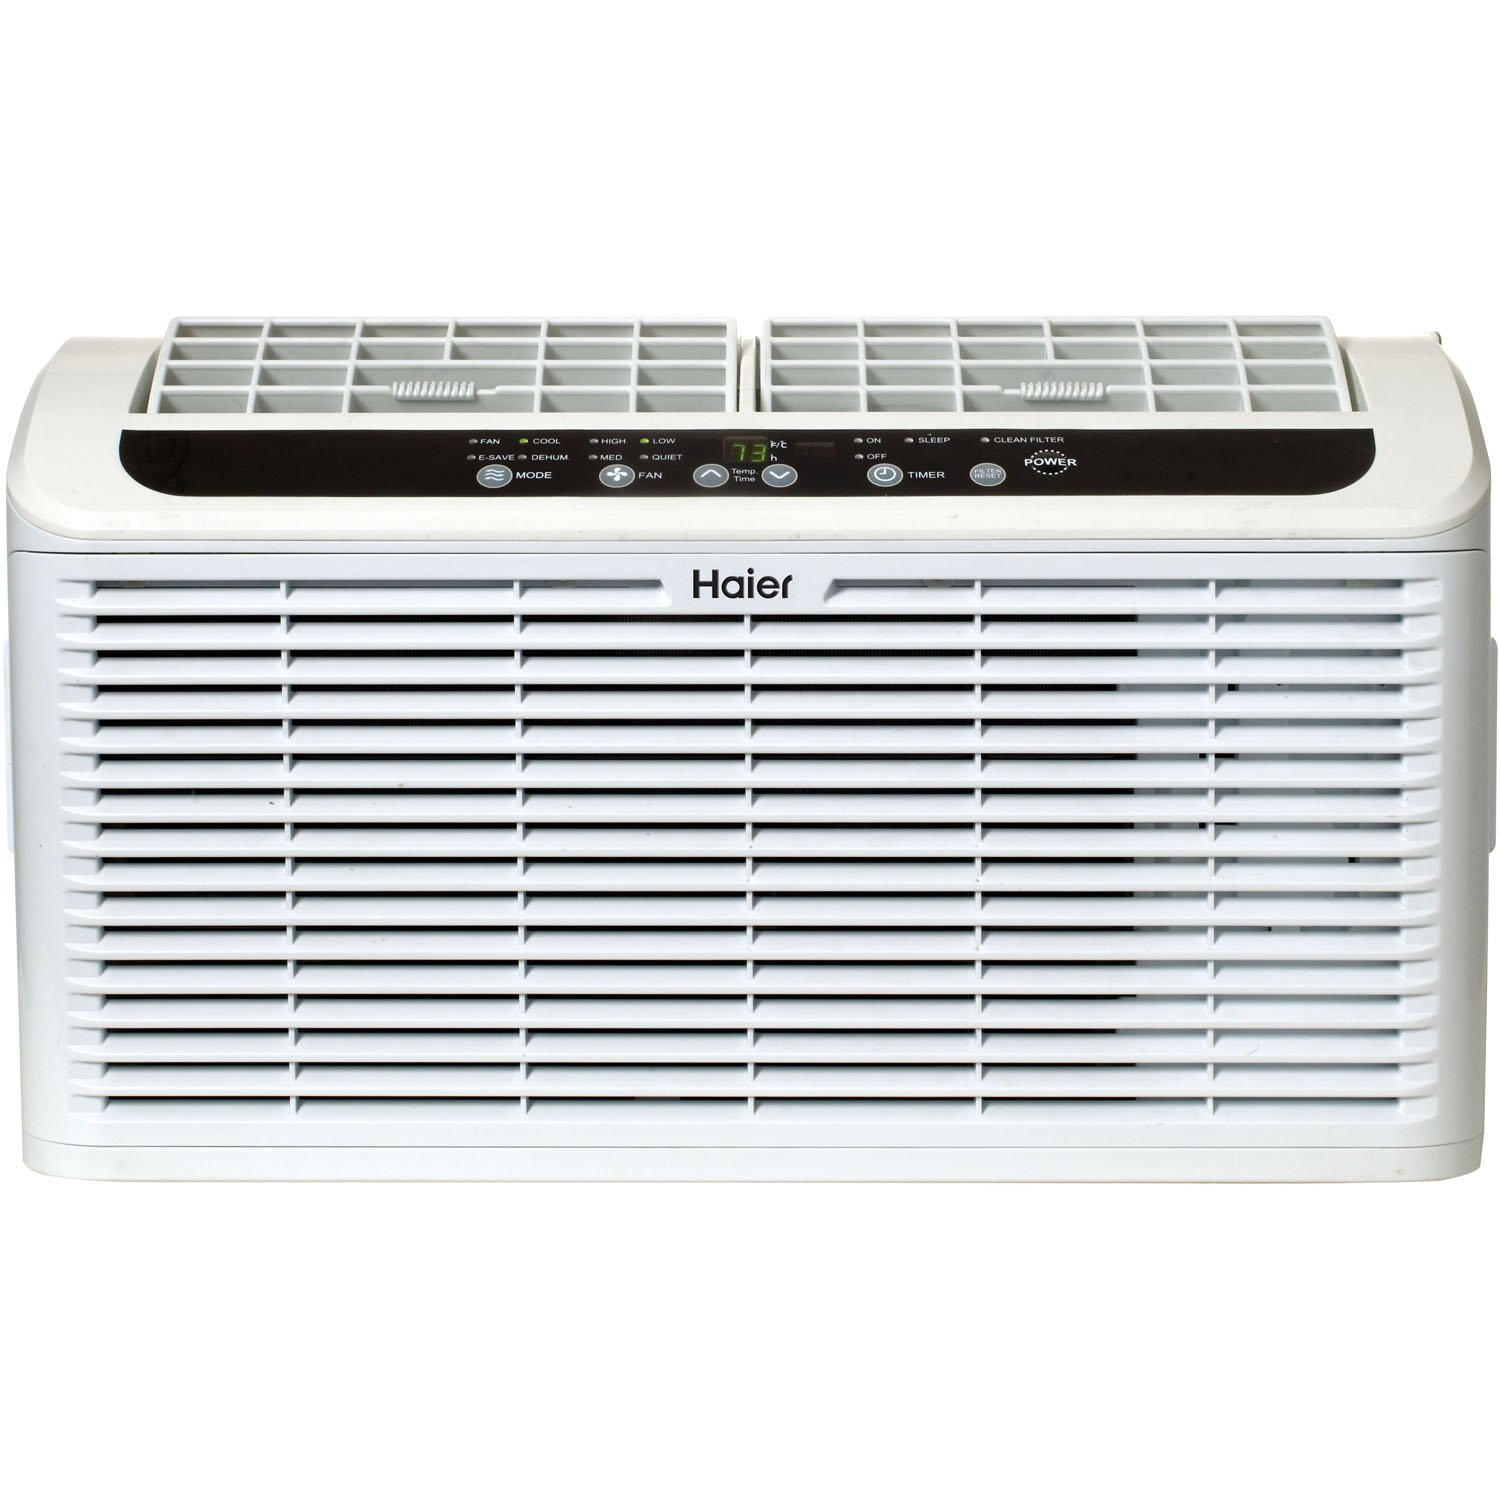 Haier ESAQ406T 22'' Window Air Conditioner Serenity Series with 6,000 BTU 115V W/ LED remote control in White by Haier